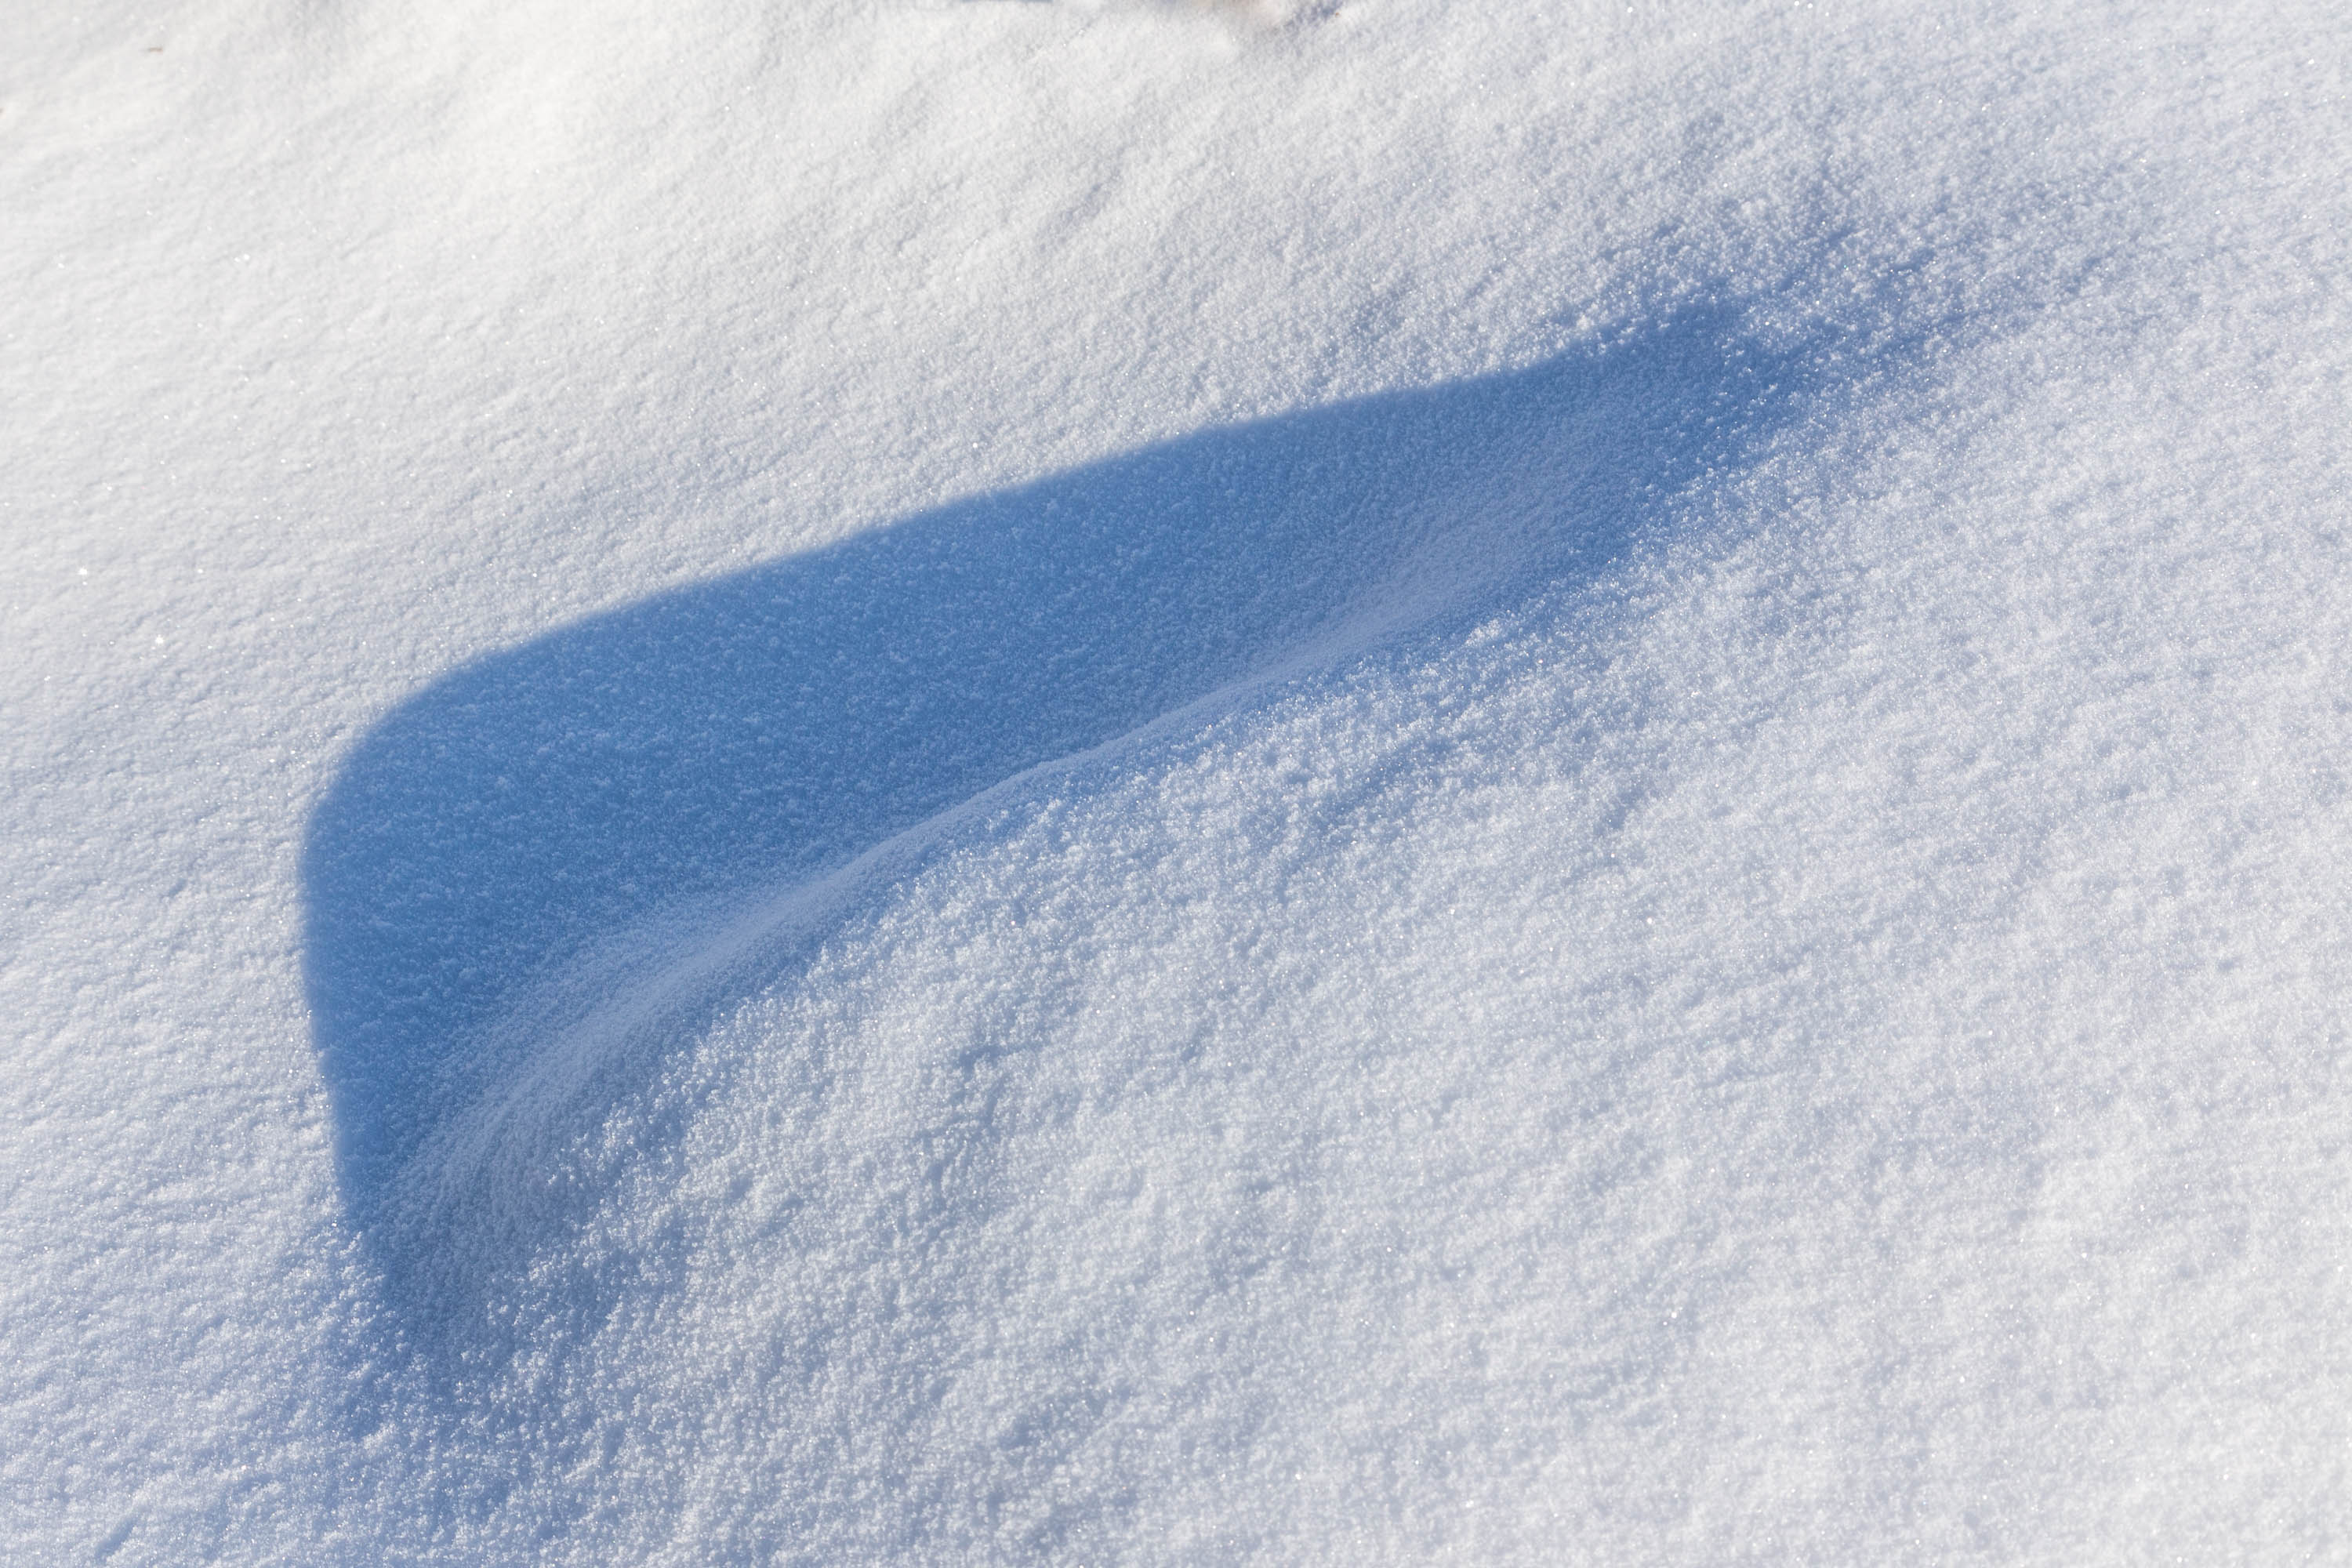 Shadow in snow